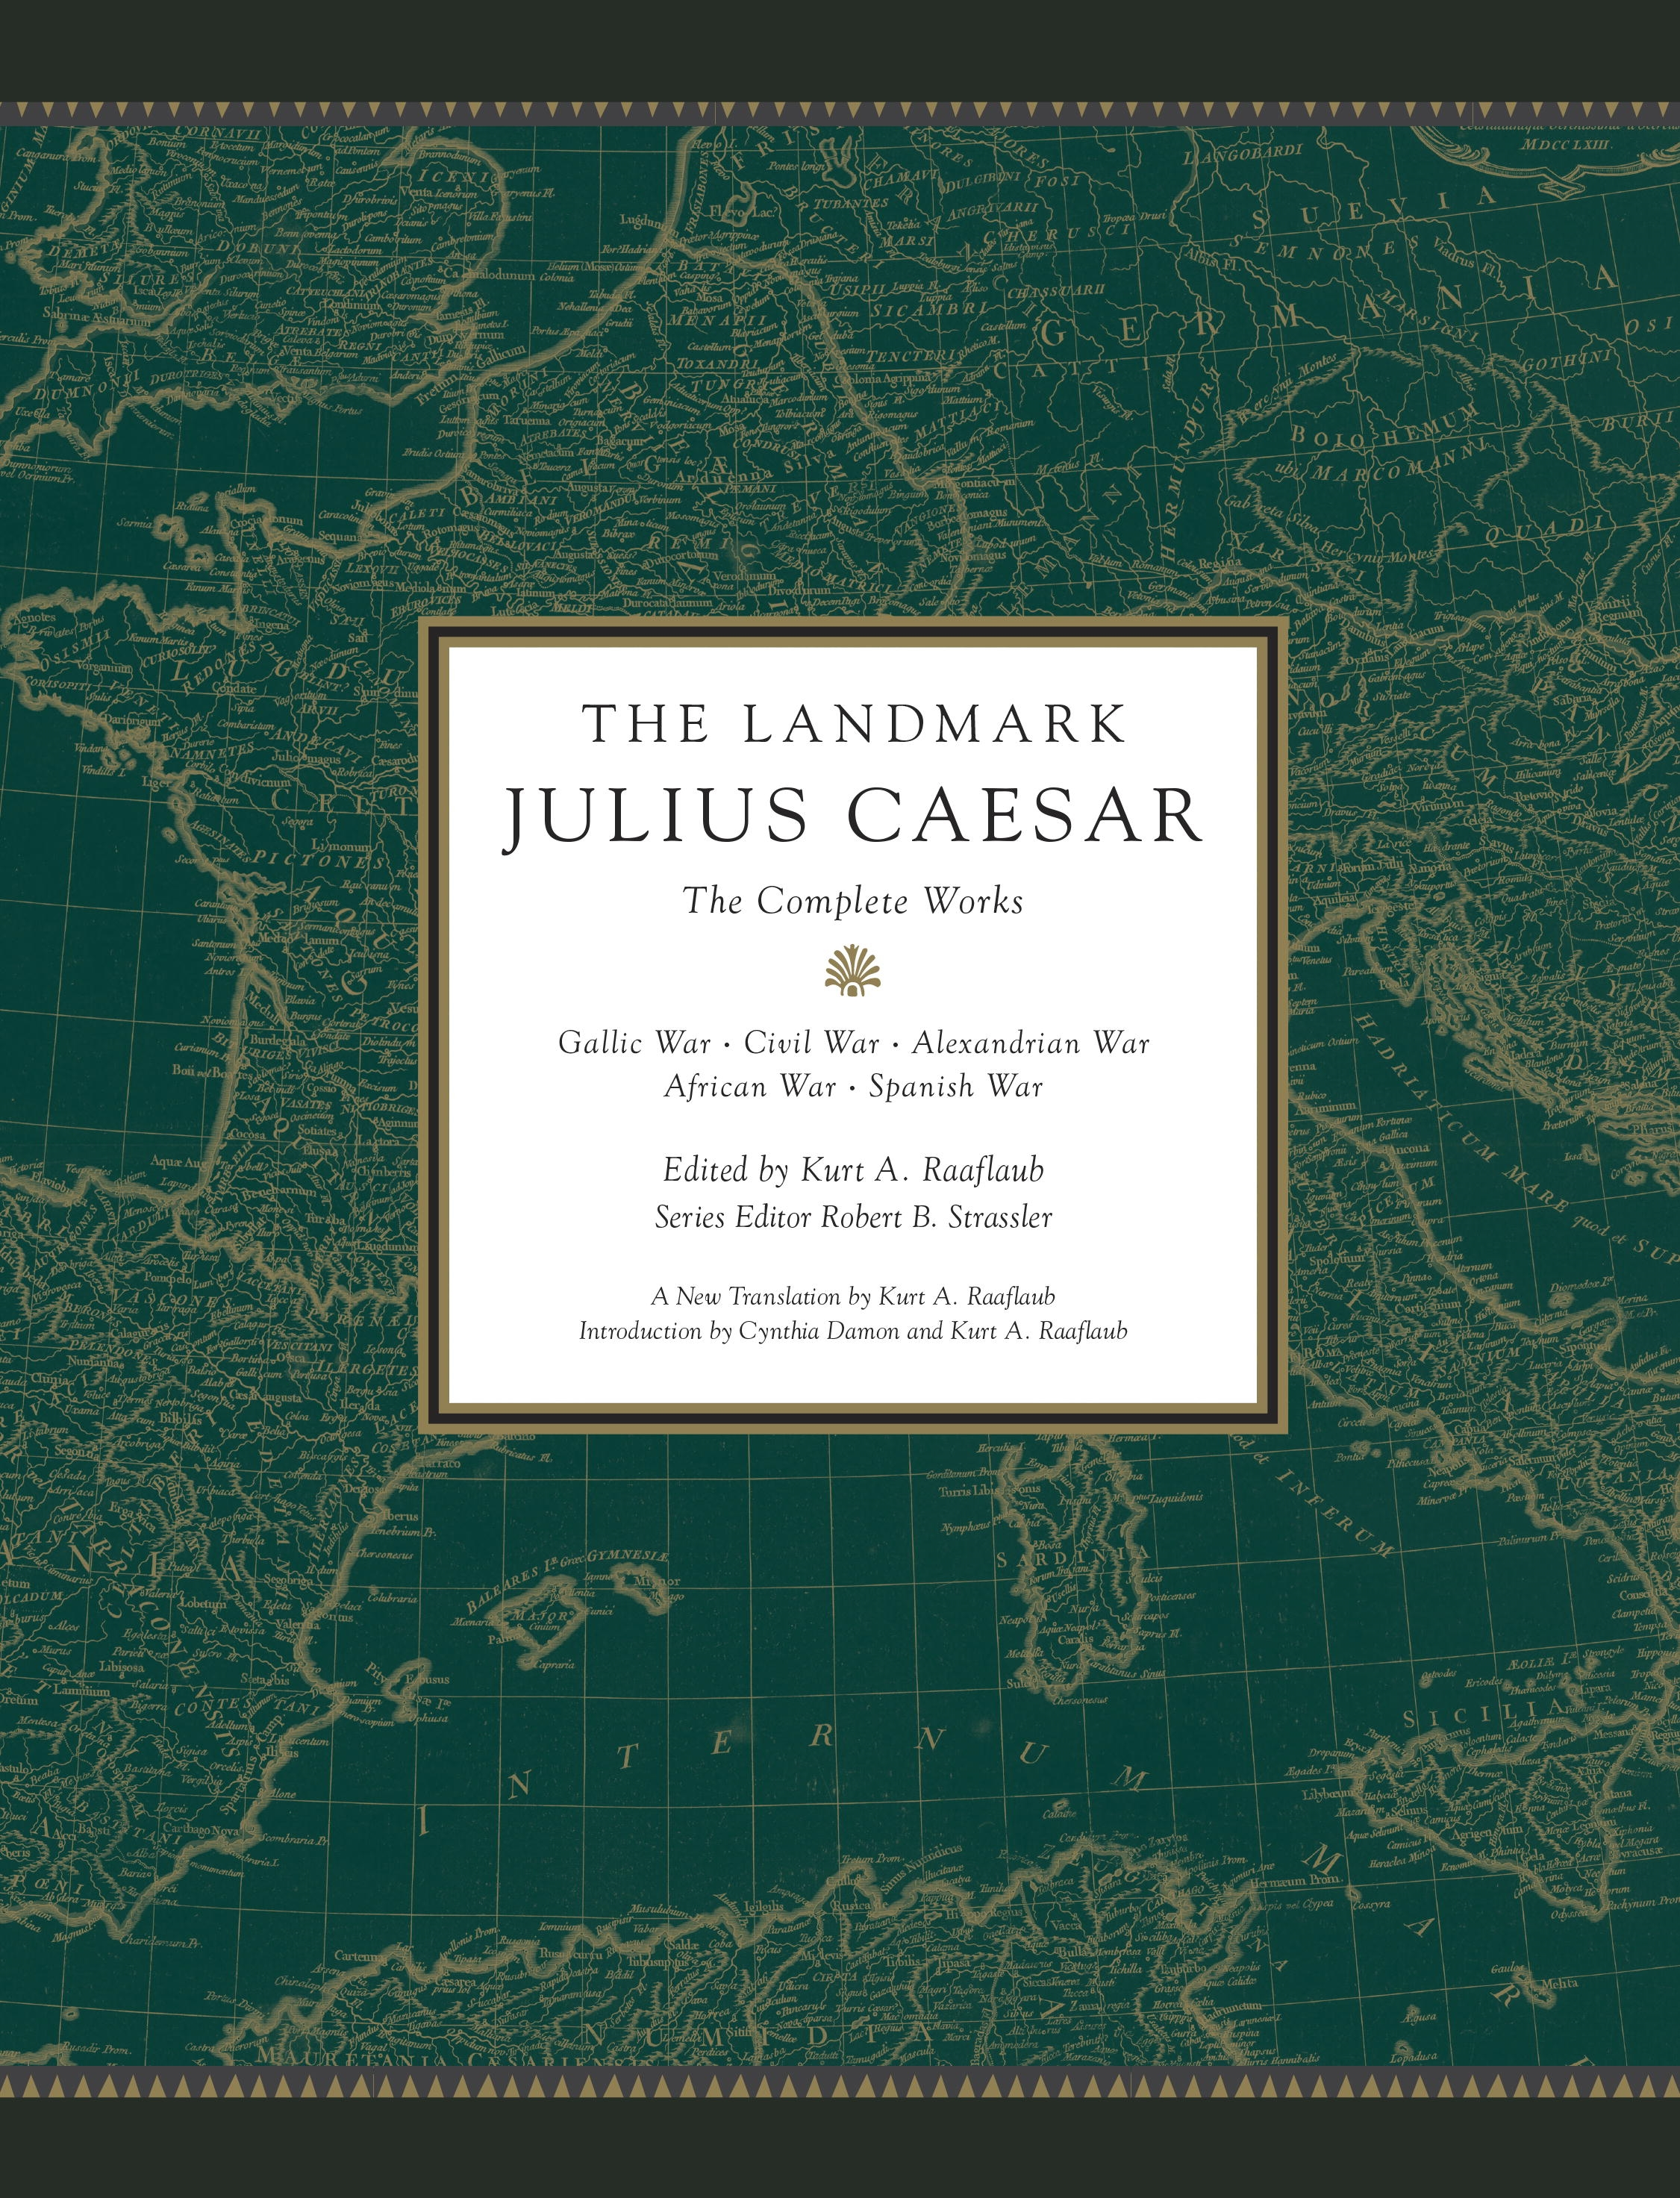 The Landmark Julius Caesar: The Gallic Wars and the Civil War